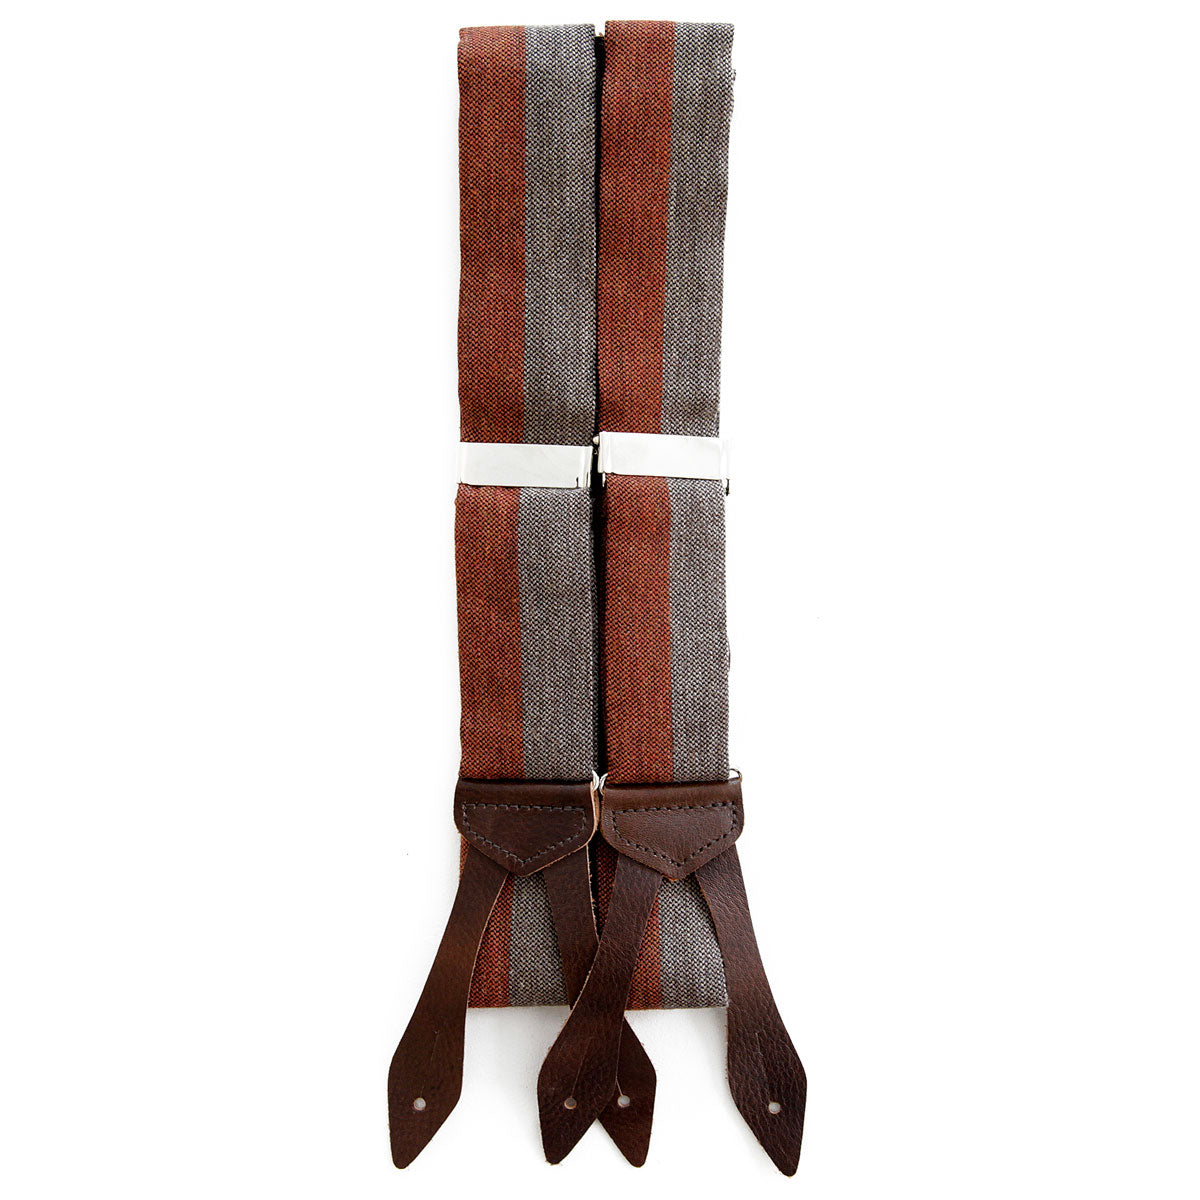 b160a5a0d The Waverly Suspenders – Alexander Olch